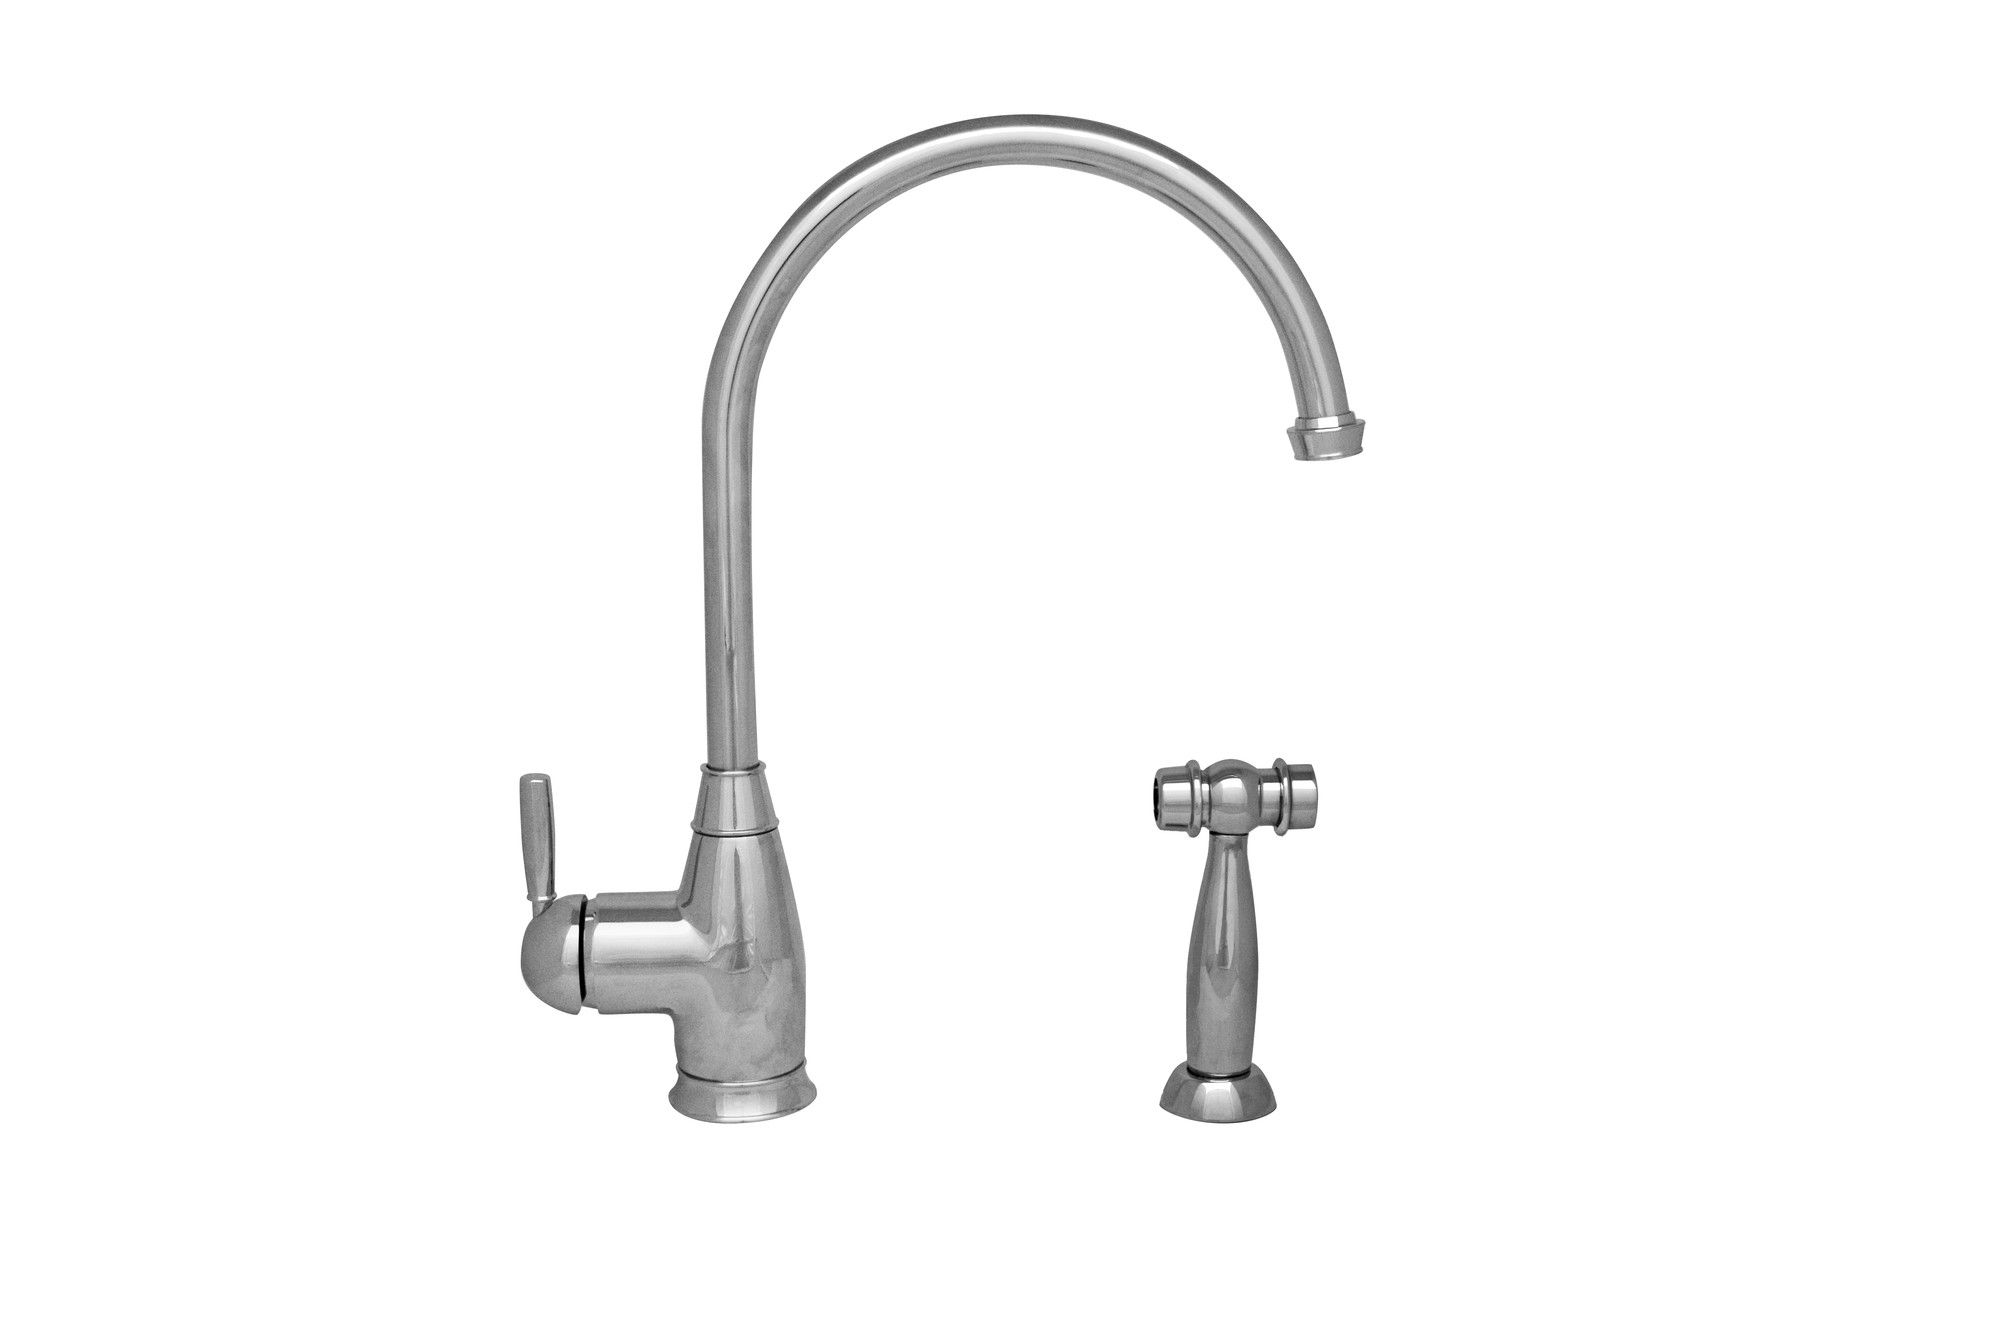 Queenhaus Single Handle Deck Mounted Standard Kitchen Faucet with Side Spray